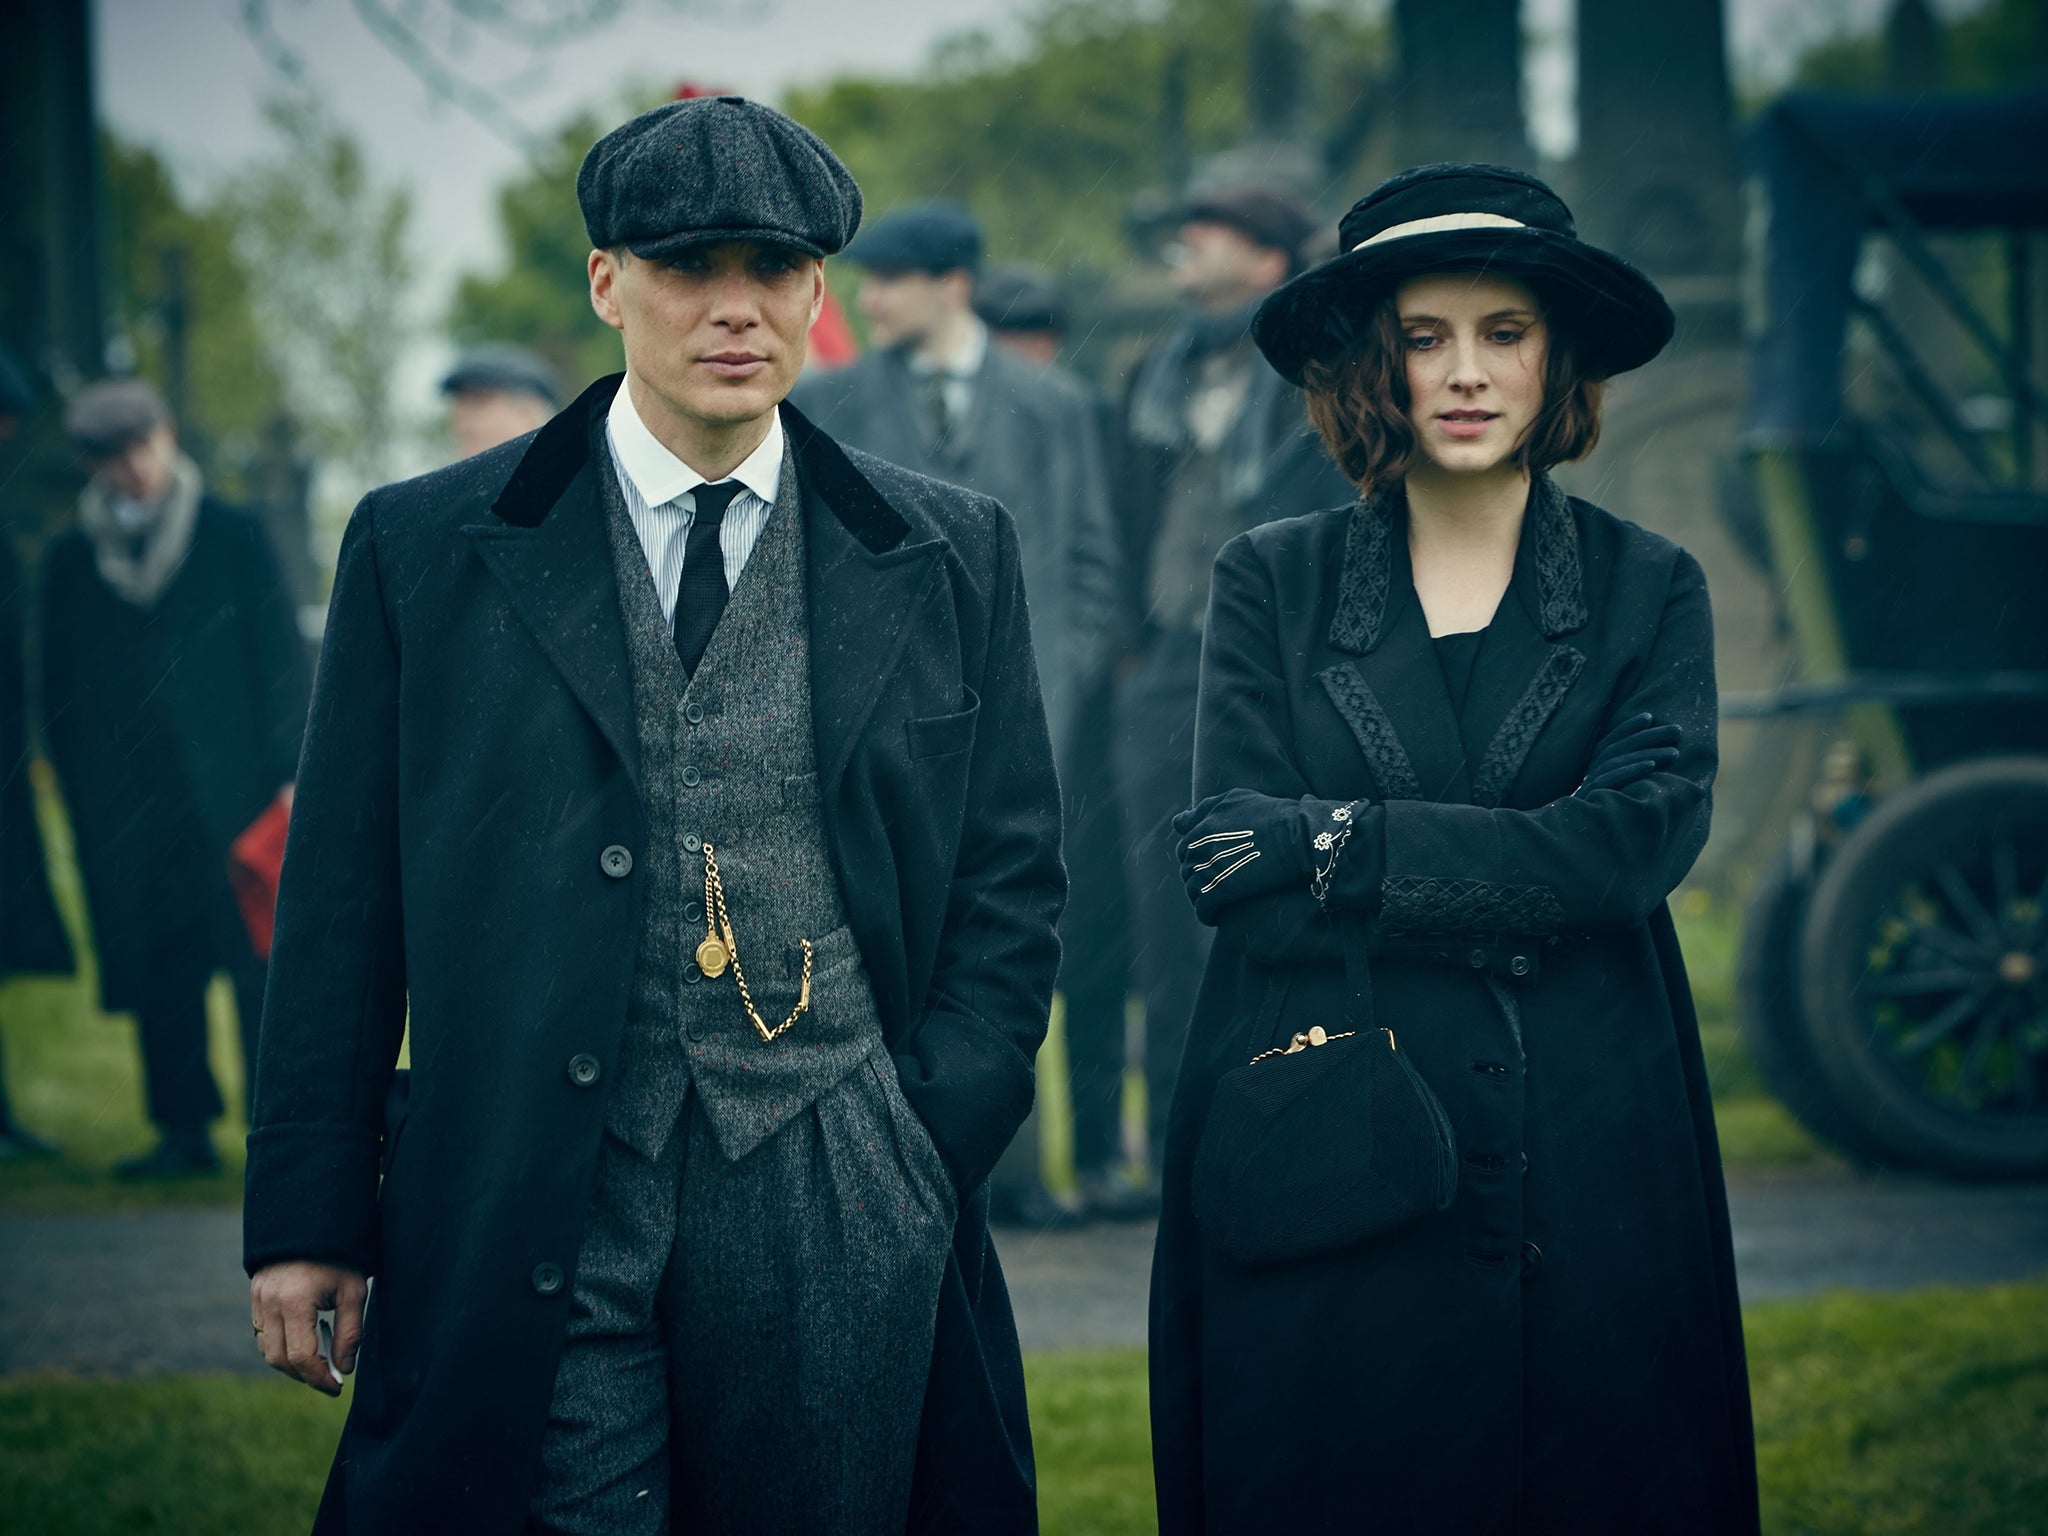 Peaky Blinders Series 2 Episode 1 Tv Review Second